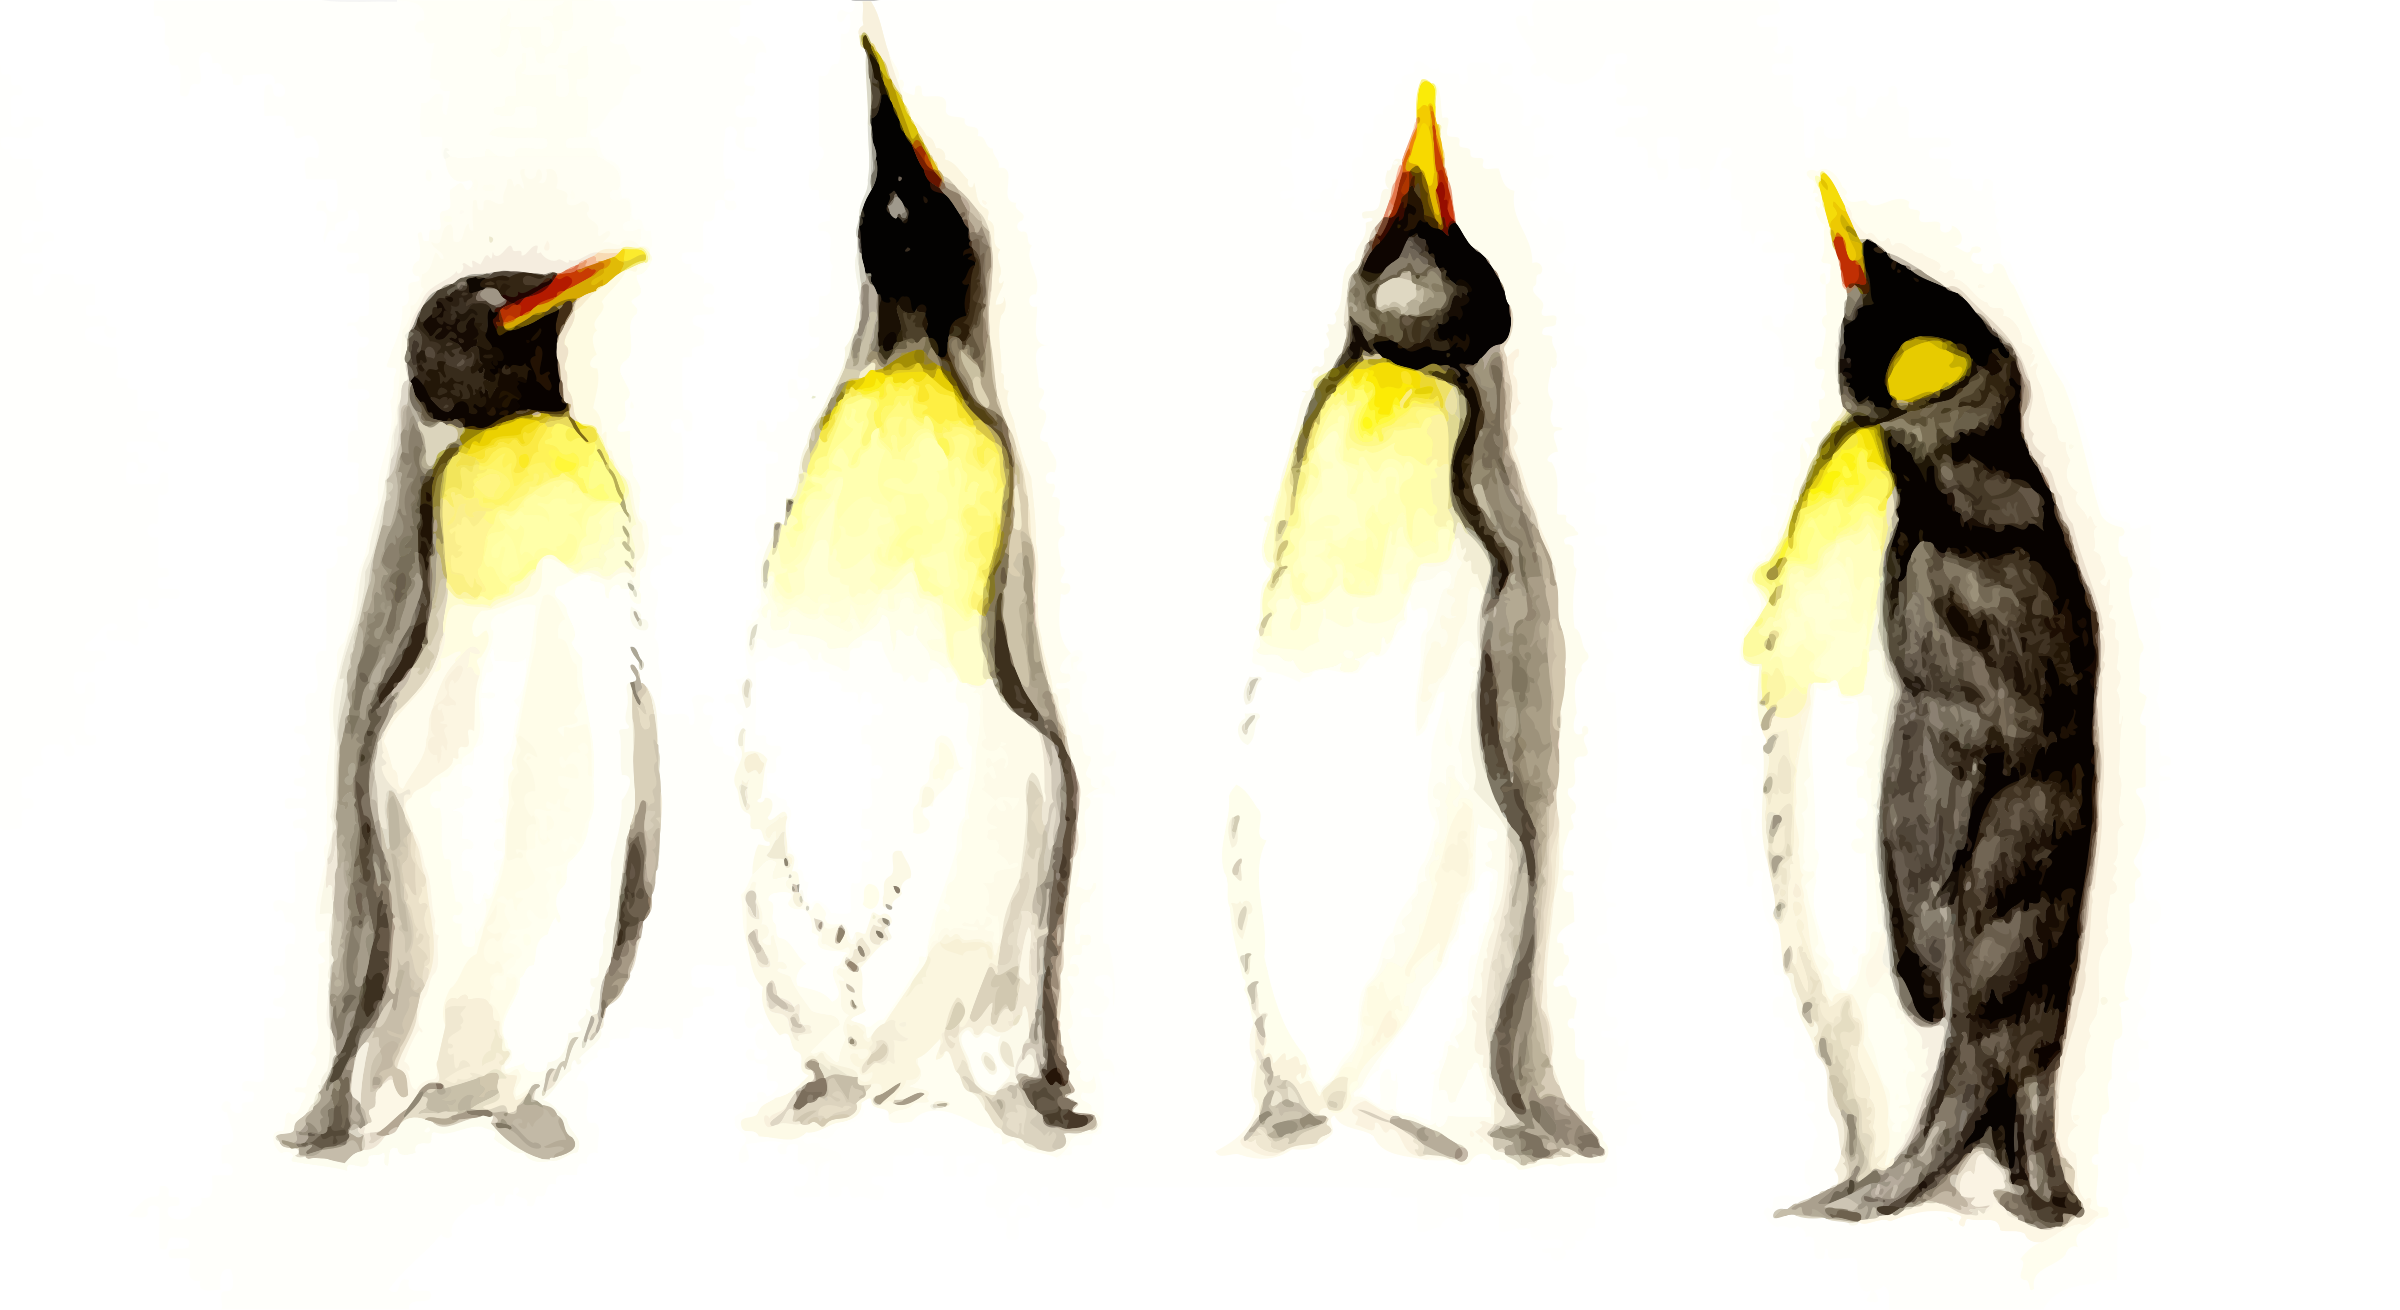 cristieleung's Penguins vectorised by Firkin